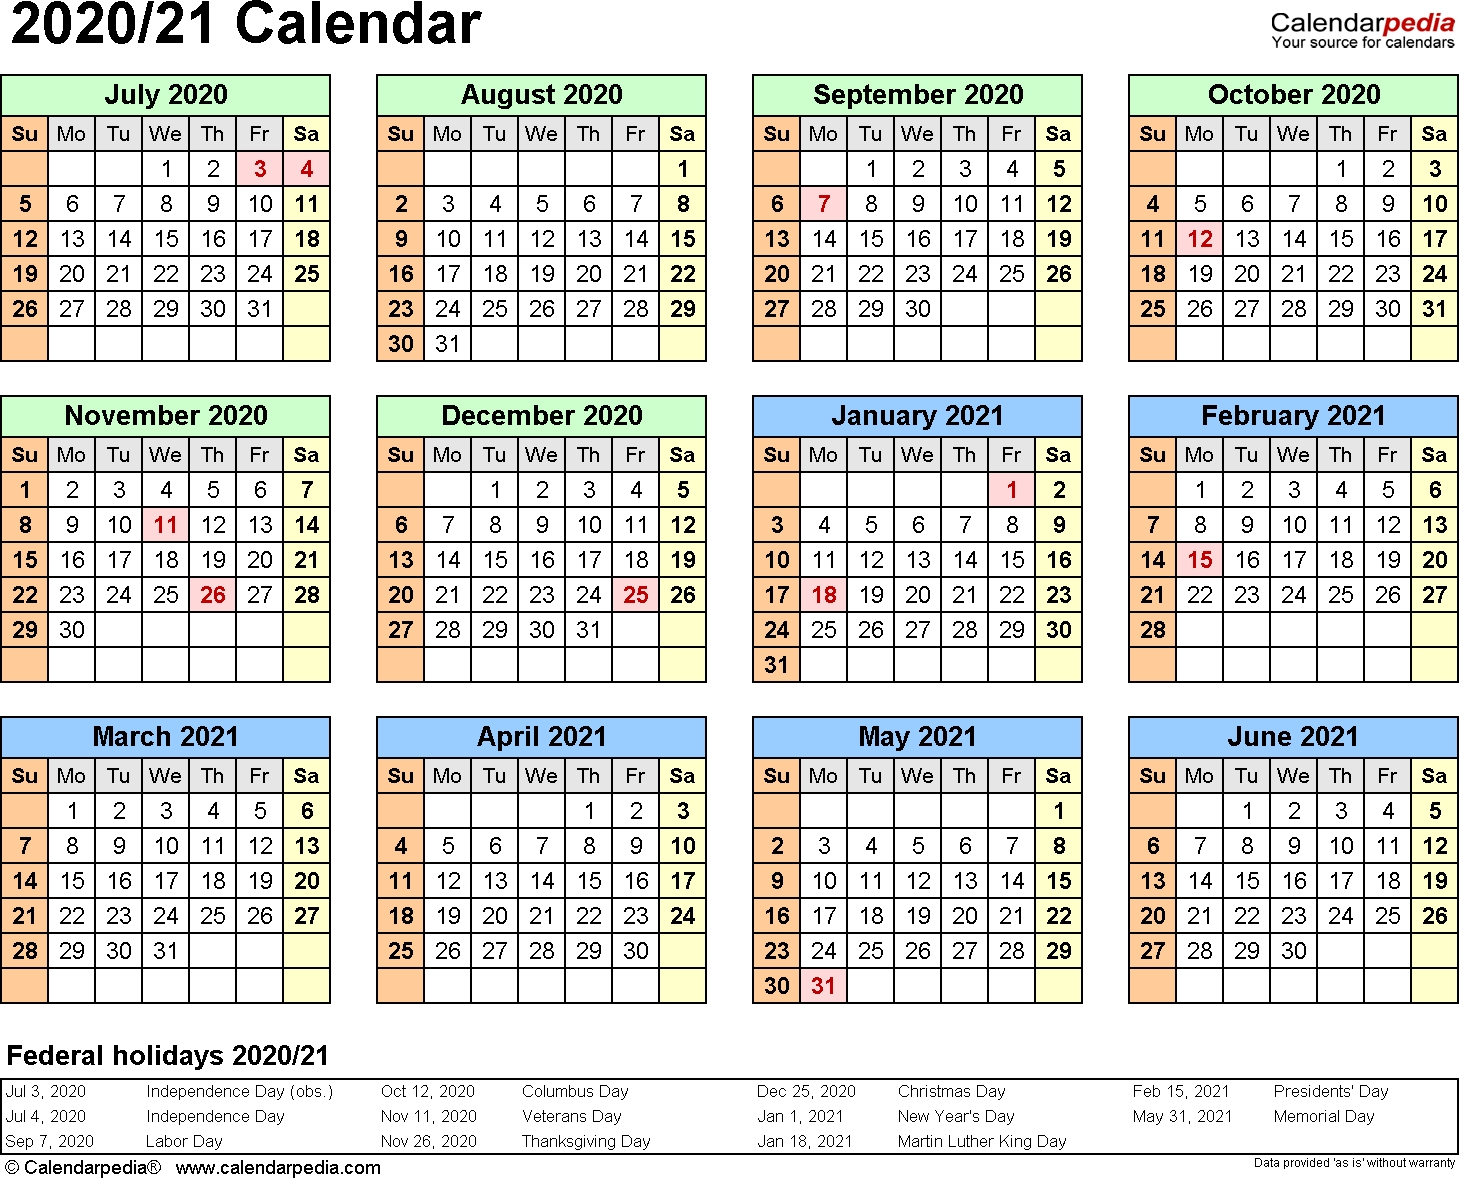 Split Year Calendar 2020/21 (July To June) - Word Templates with Half Page Calendars 2020 Printable